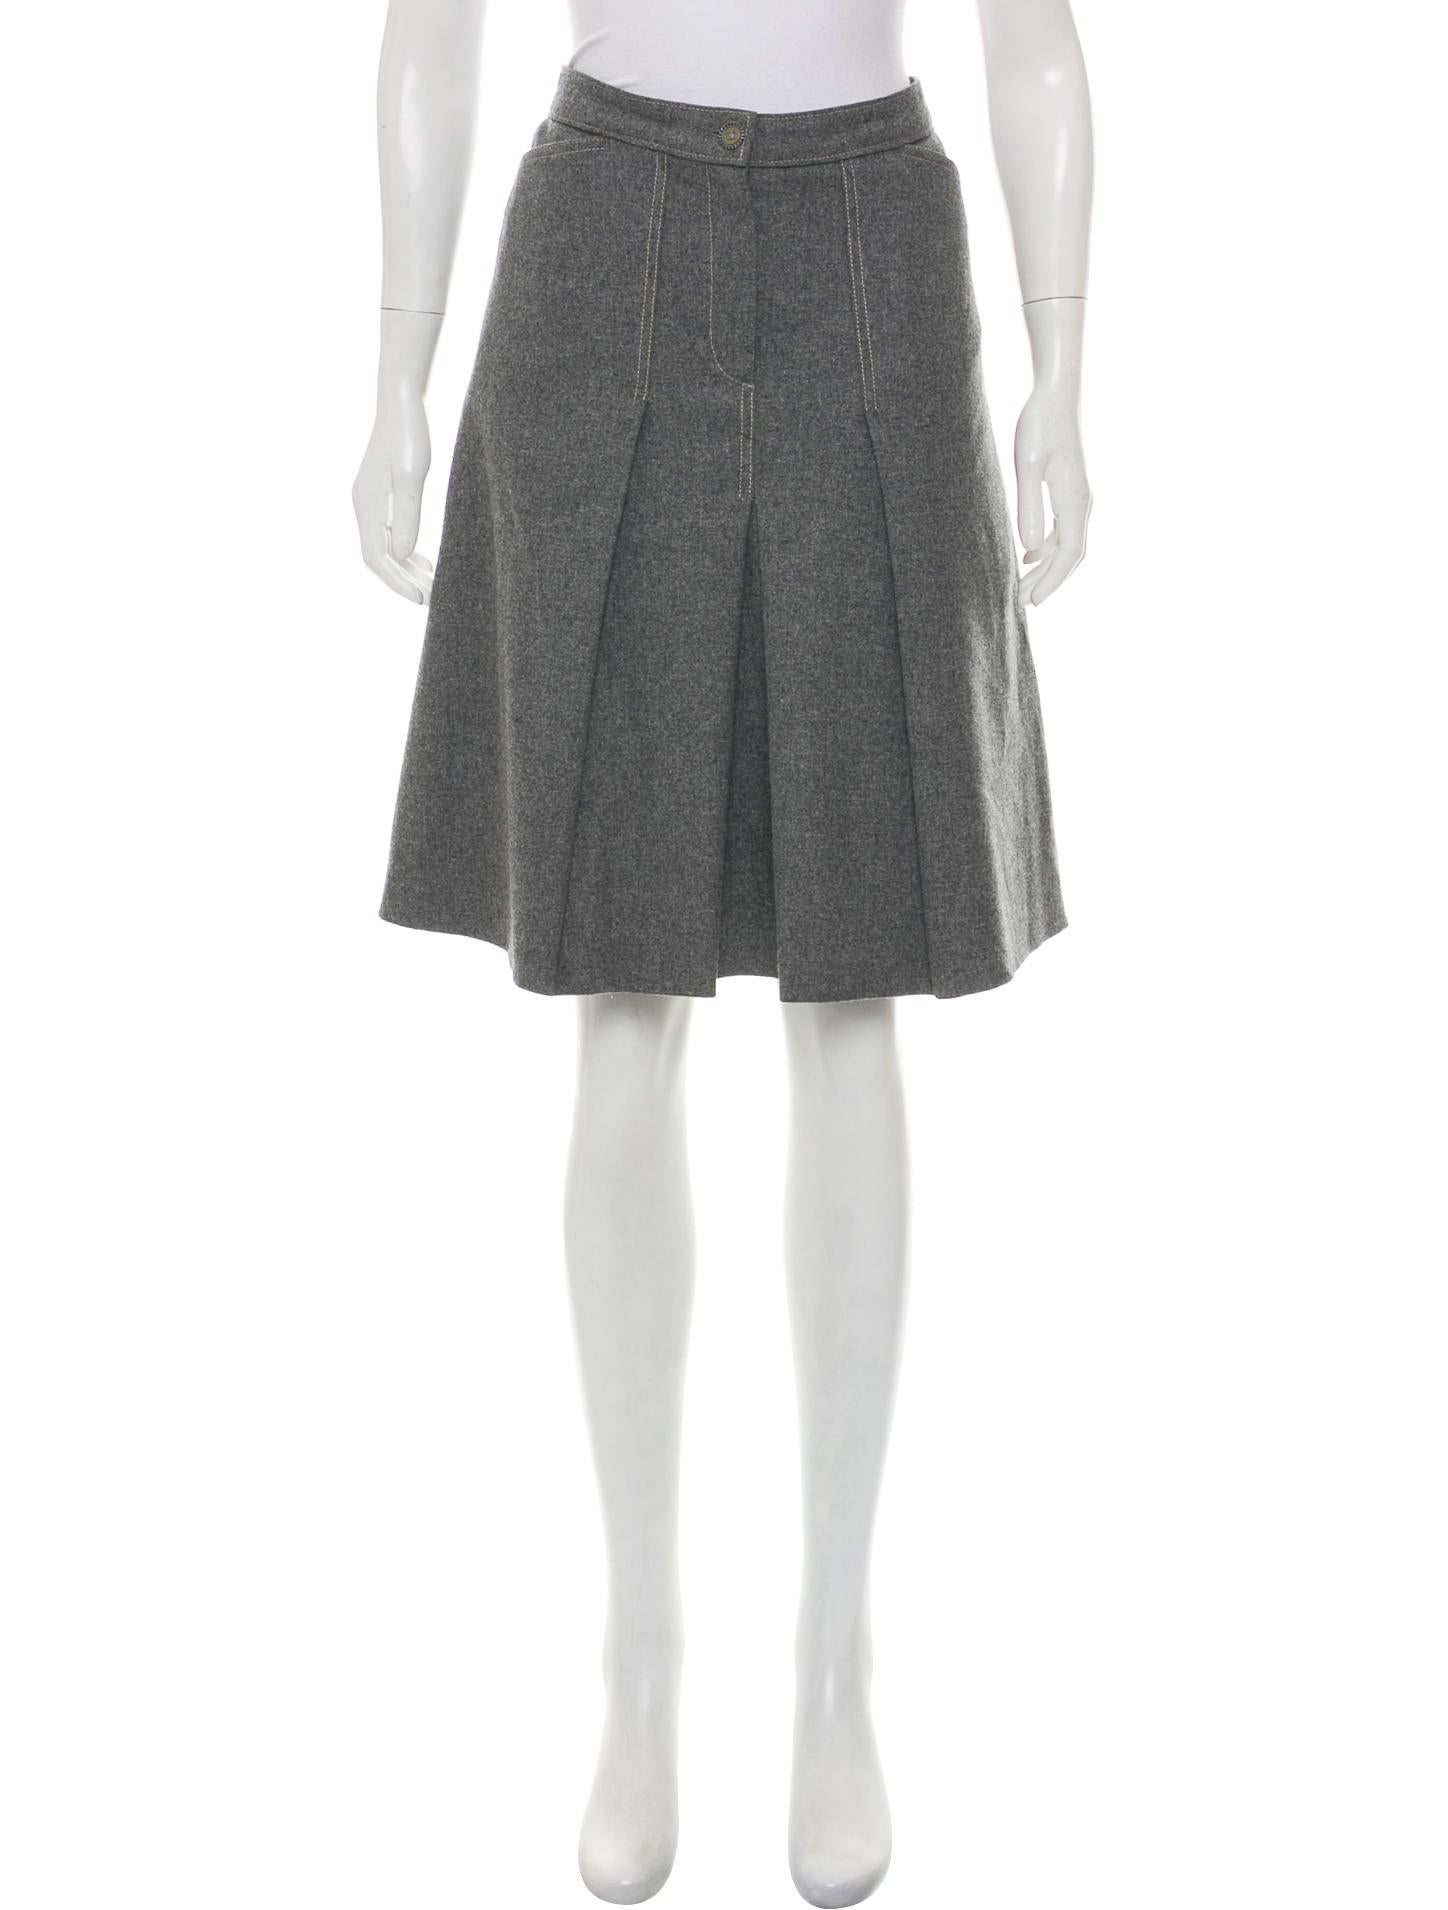 be047c3a4e Chanel Skirts | The RealReal